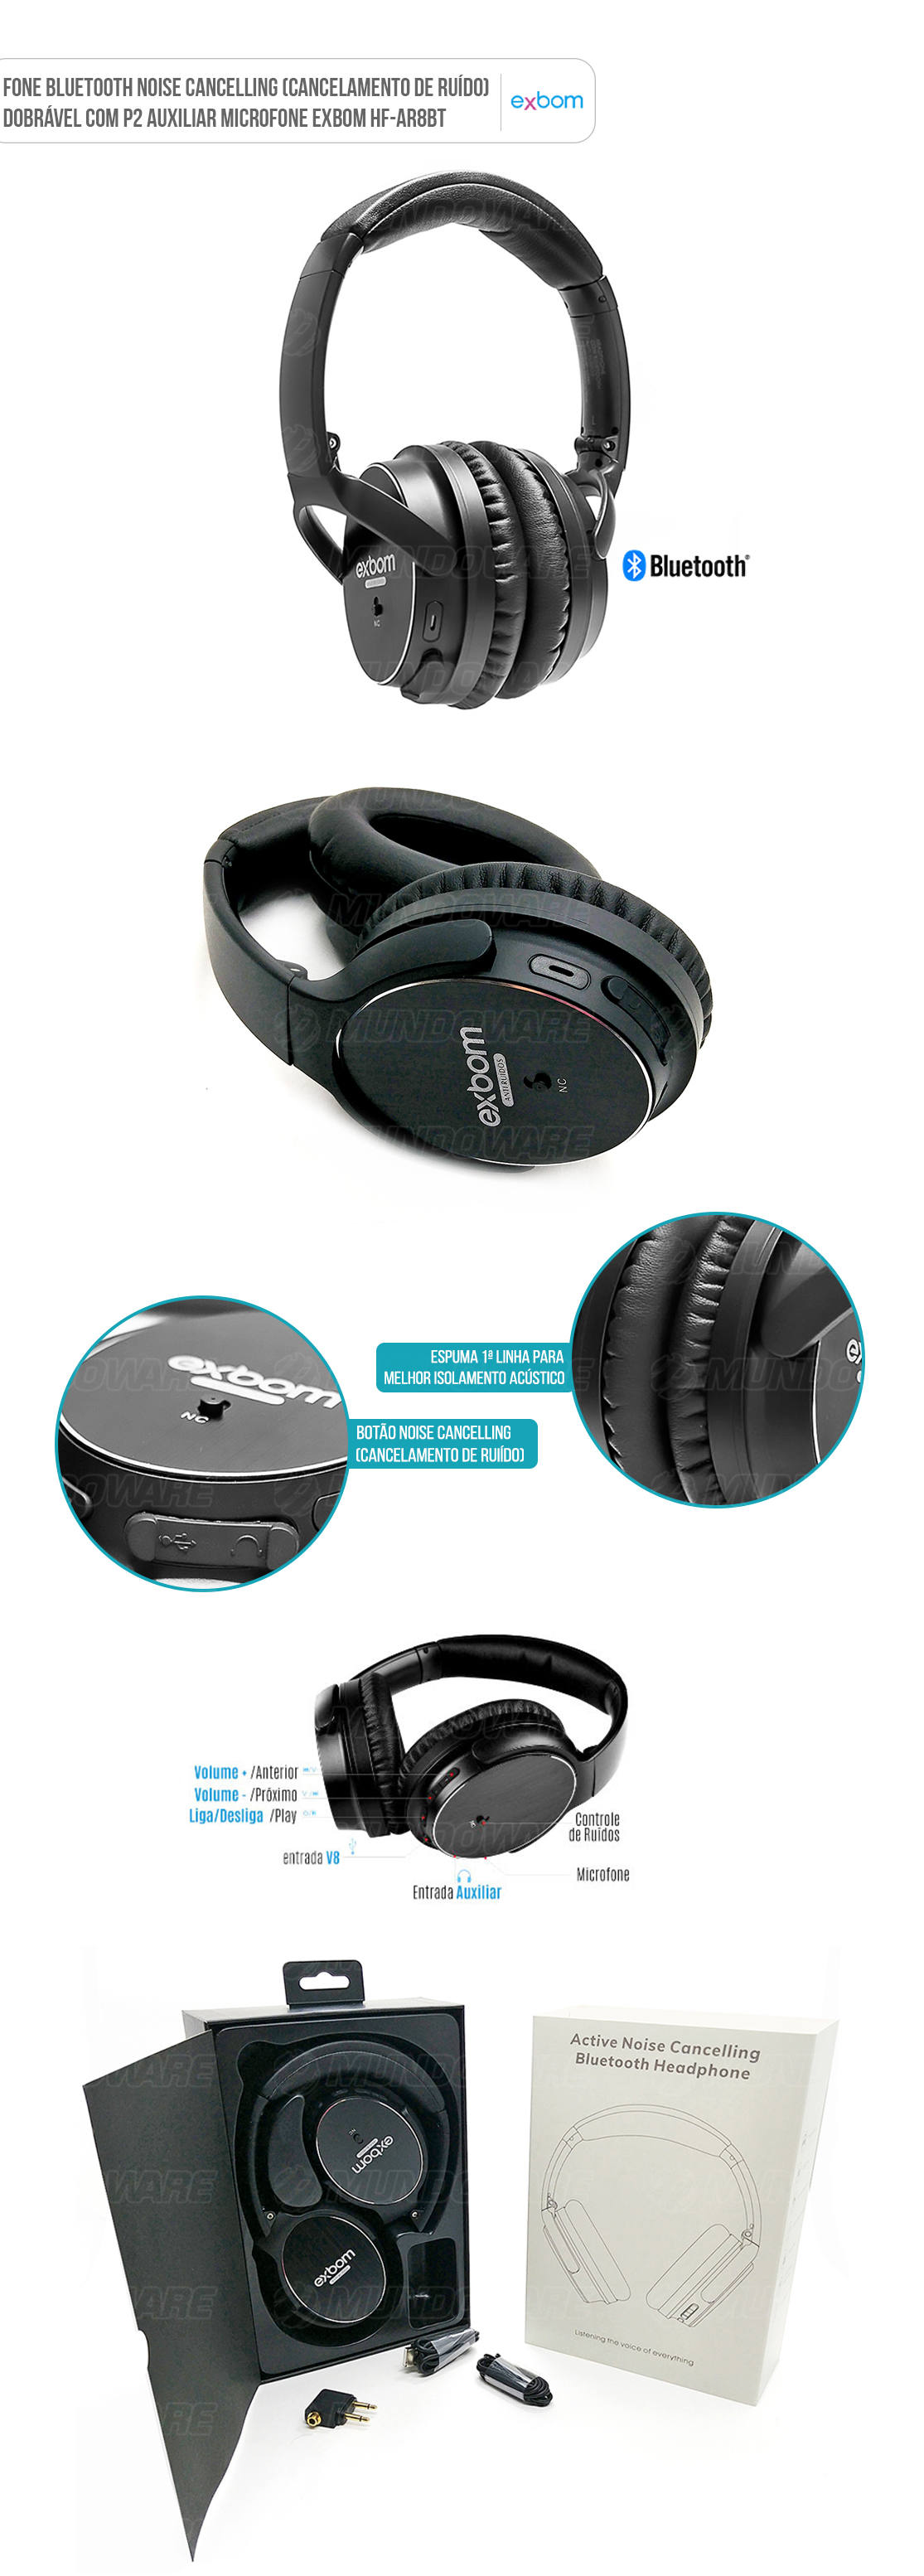 Headphone com Noise Cancelling sem fio Bluetooth Preto